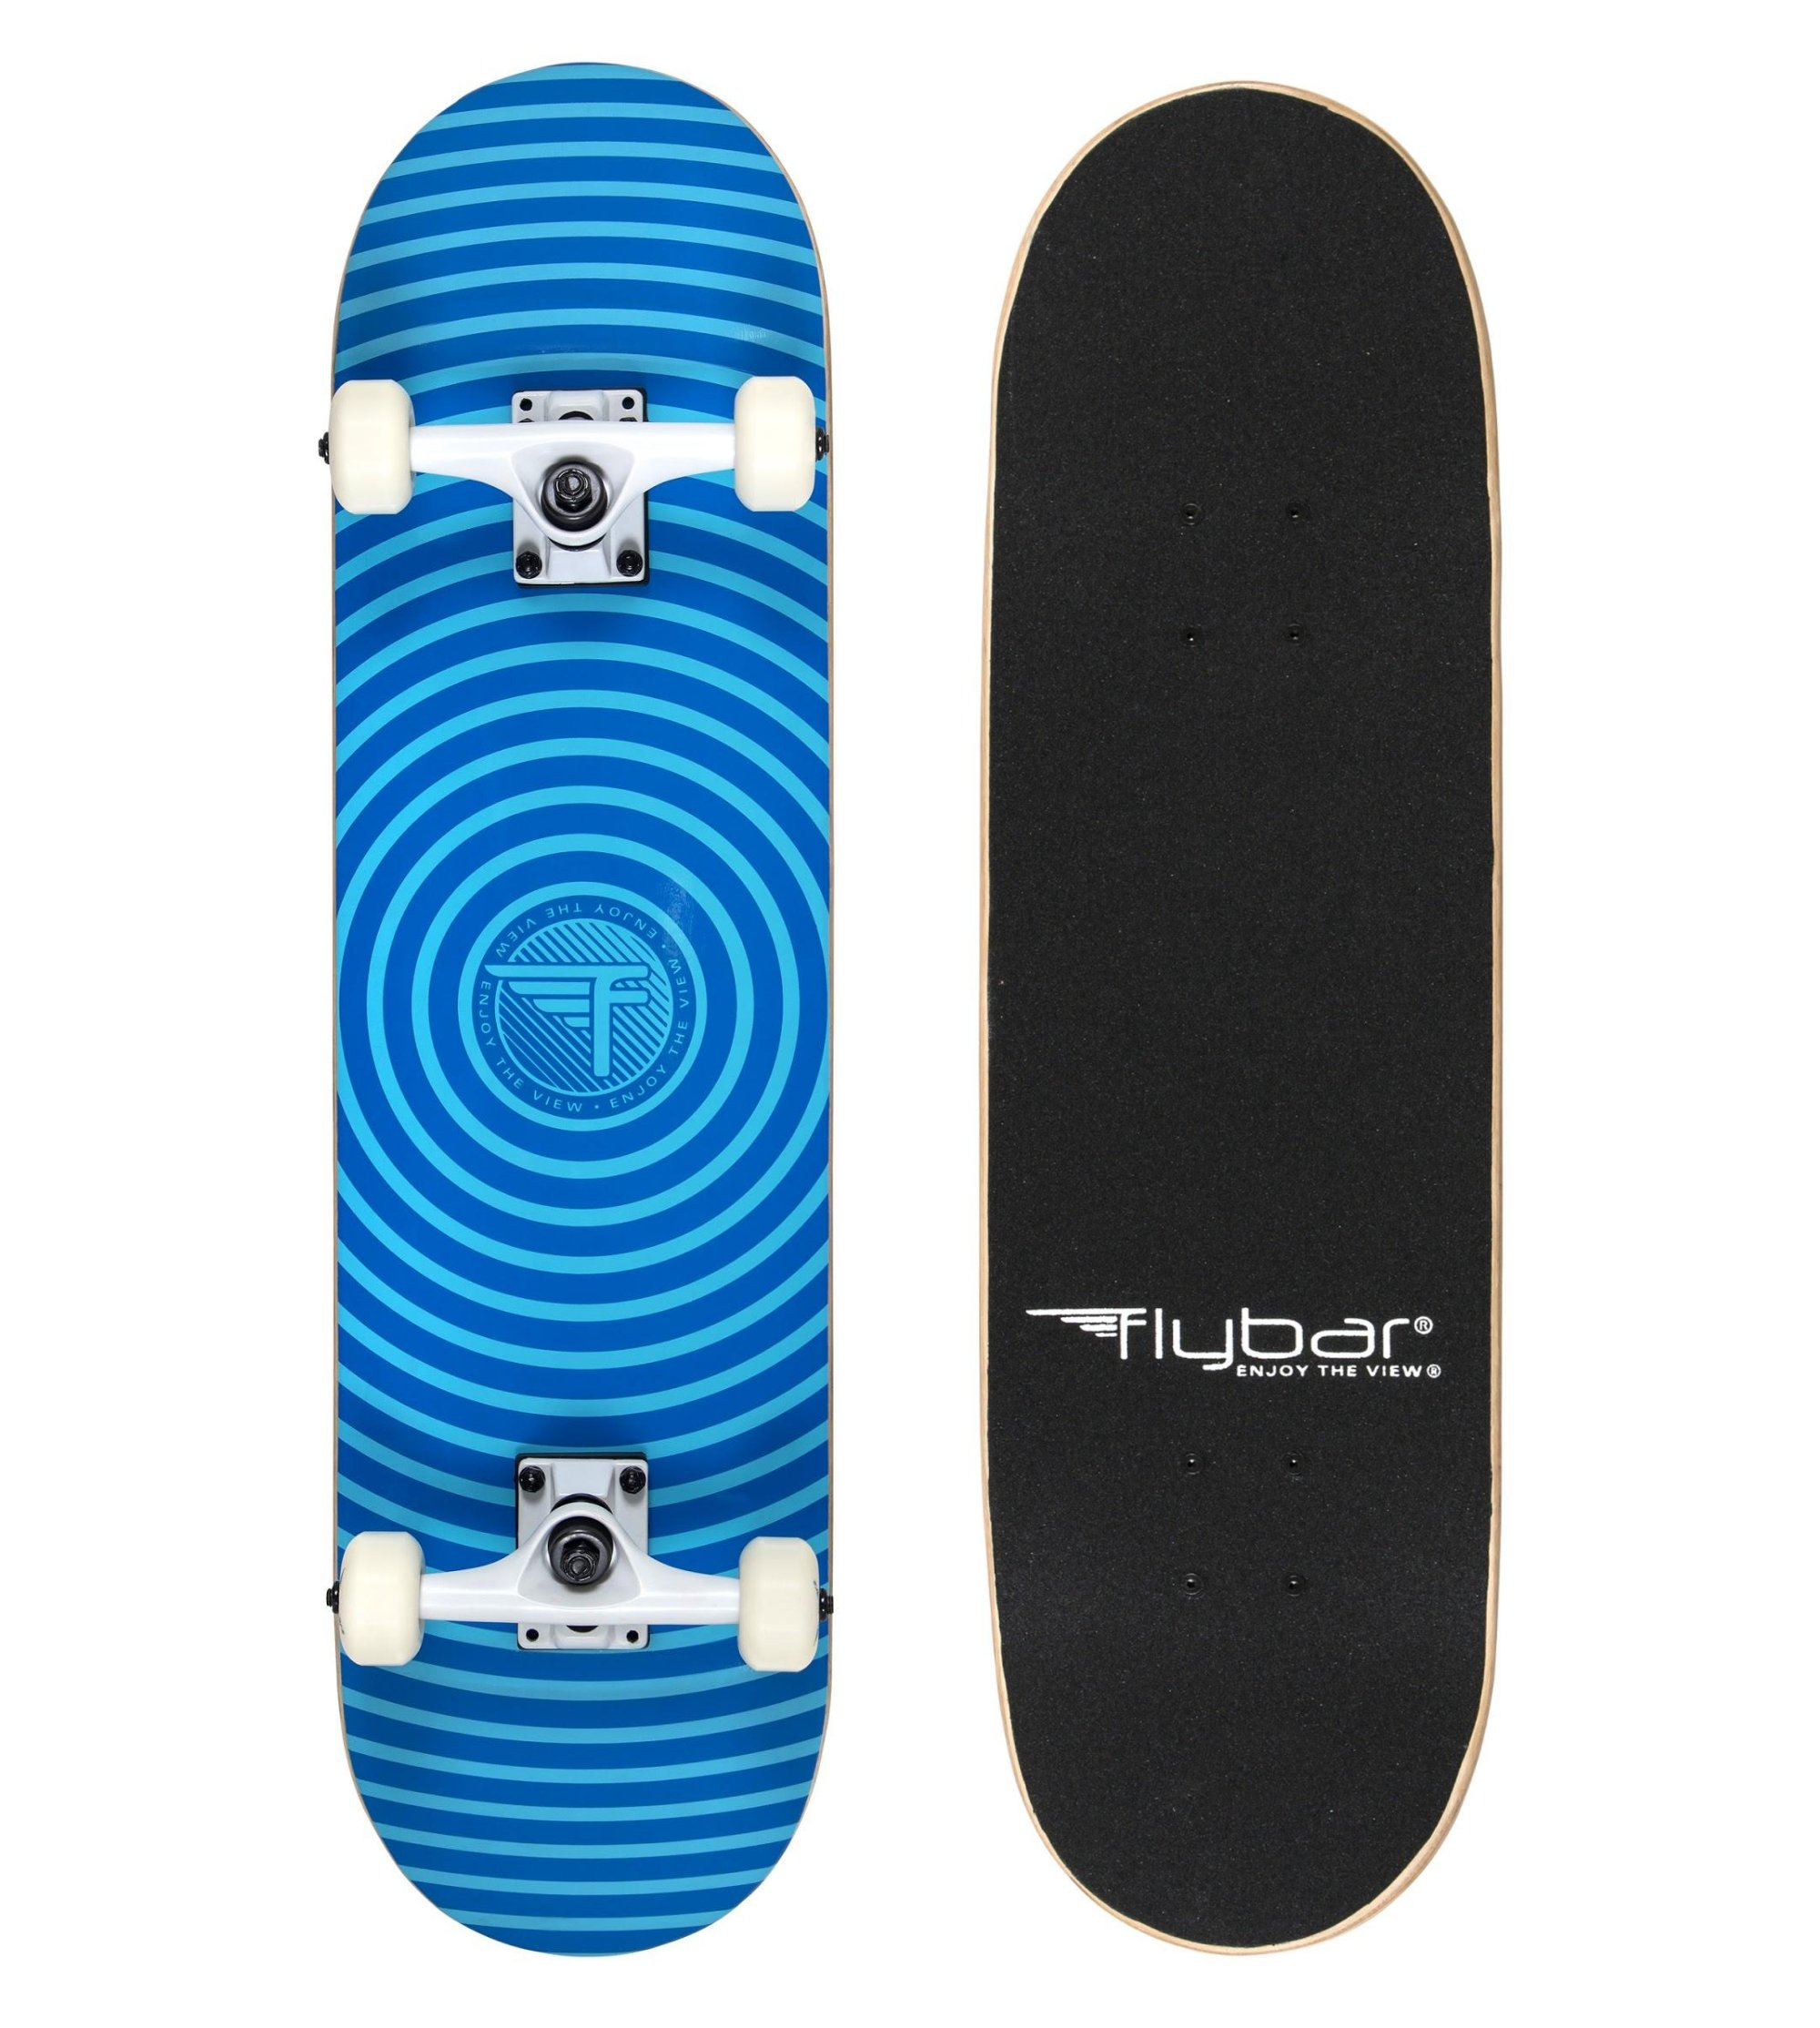 Flybar Complete Skateboards 31'' x 8'' 7 Ply Maple Wood Board (Spiral)